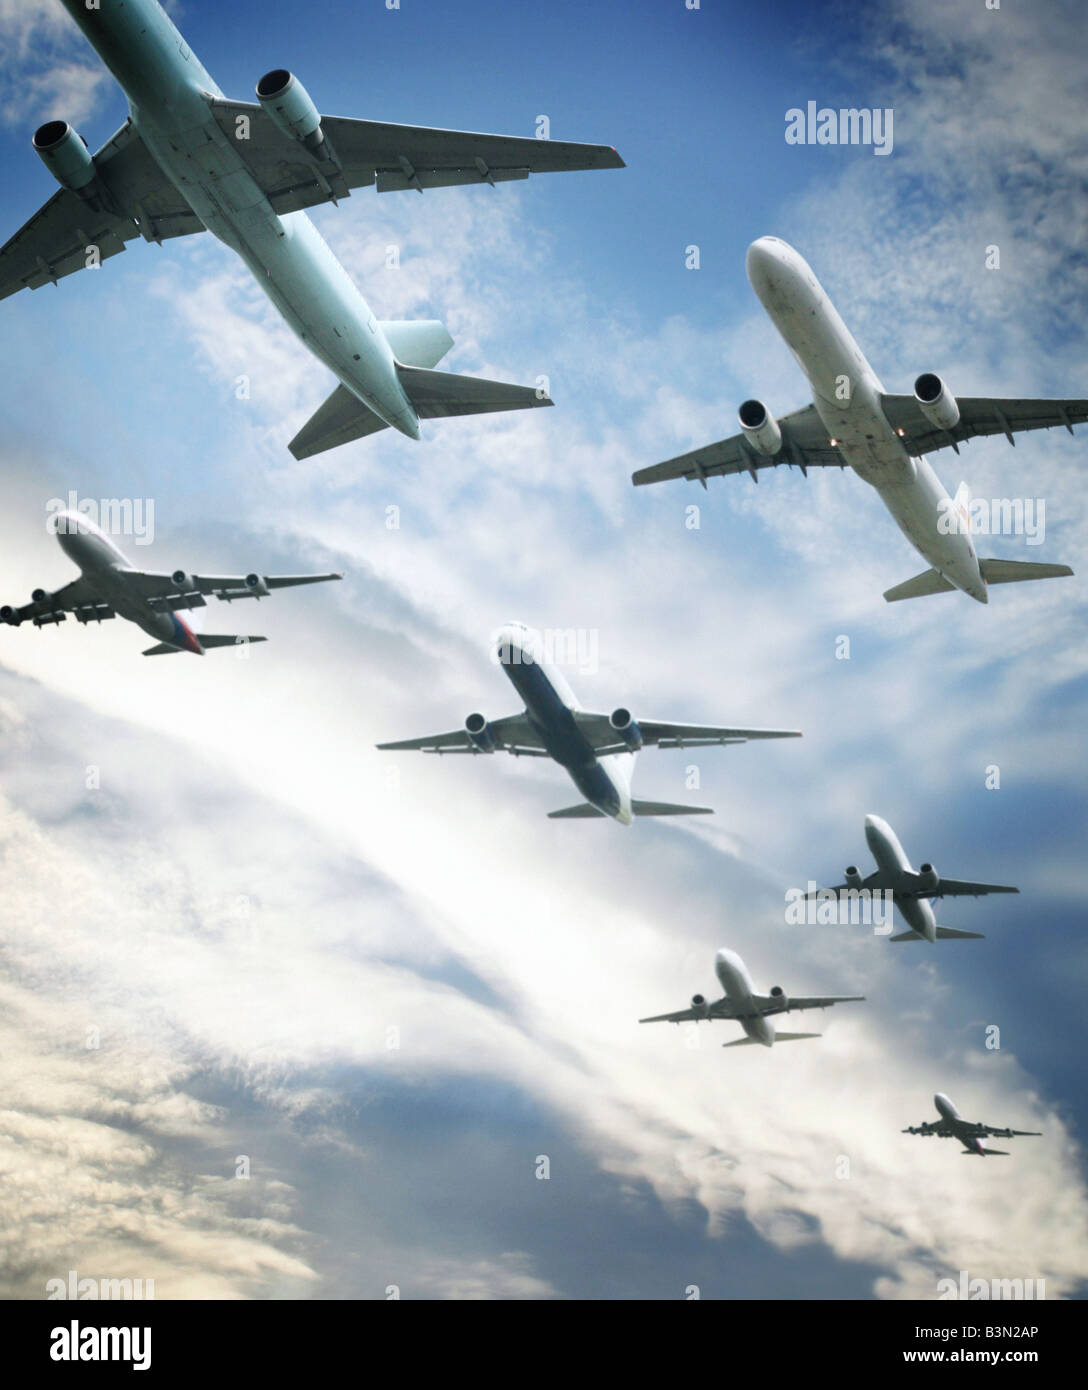 aeroplanes in flight - Stock Image